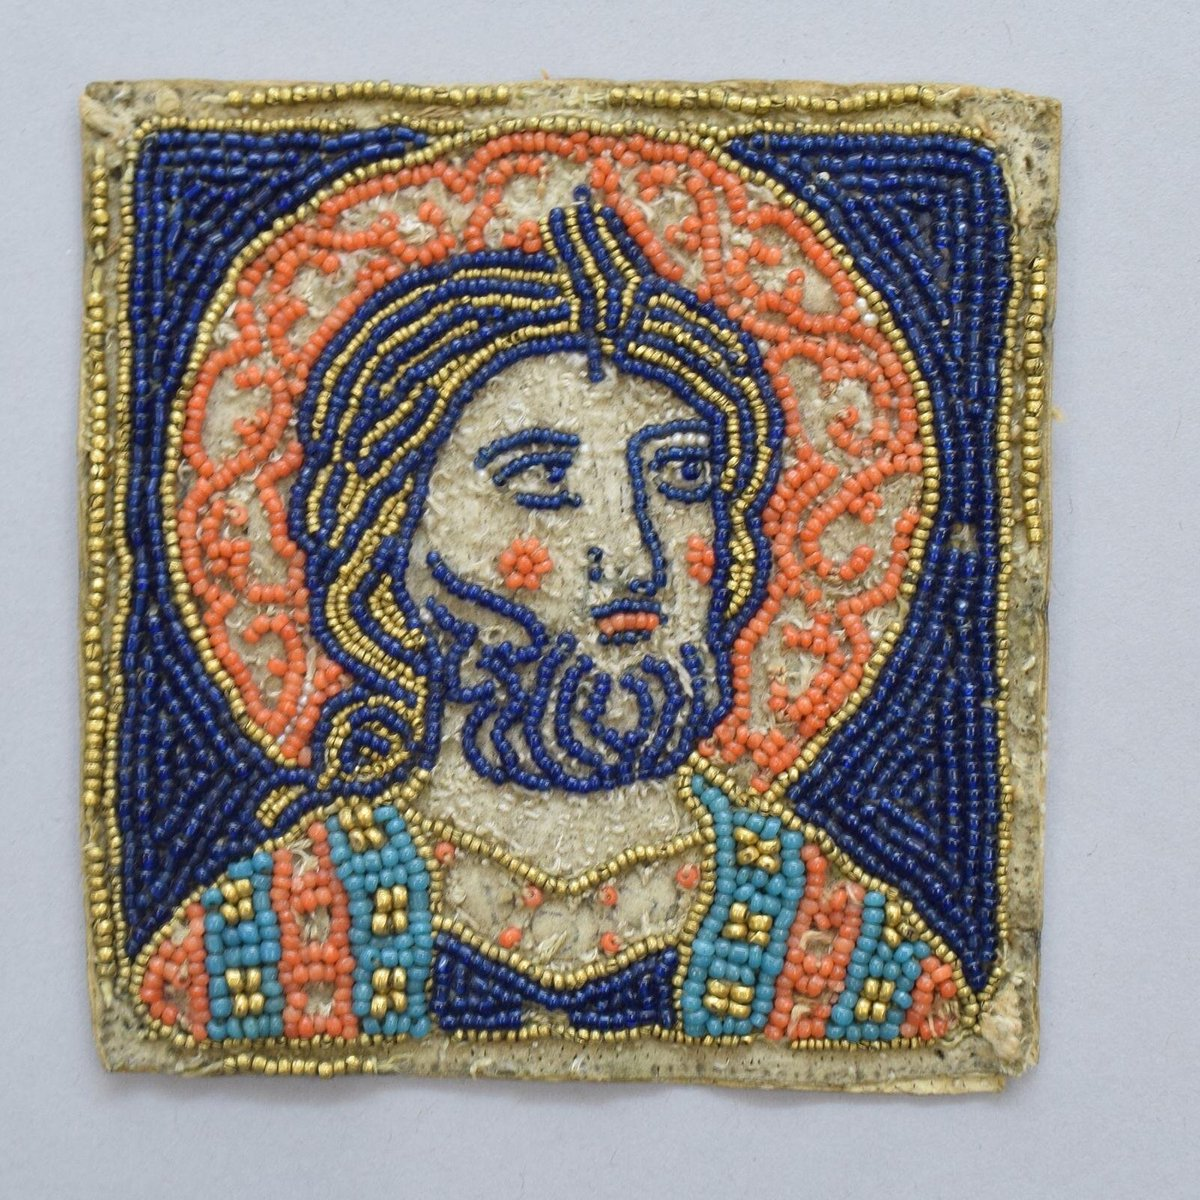 ©Victoria & Albert Museum, London - A 13th century square of a saint rendered in tiny seed glass beads. He is bearded with yellow hair and orange/red cheeks.